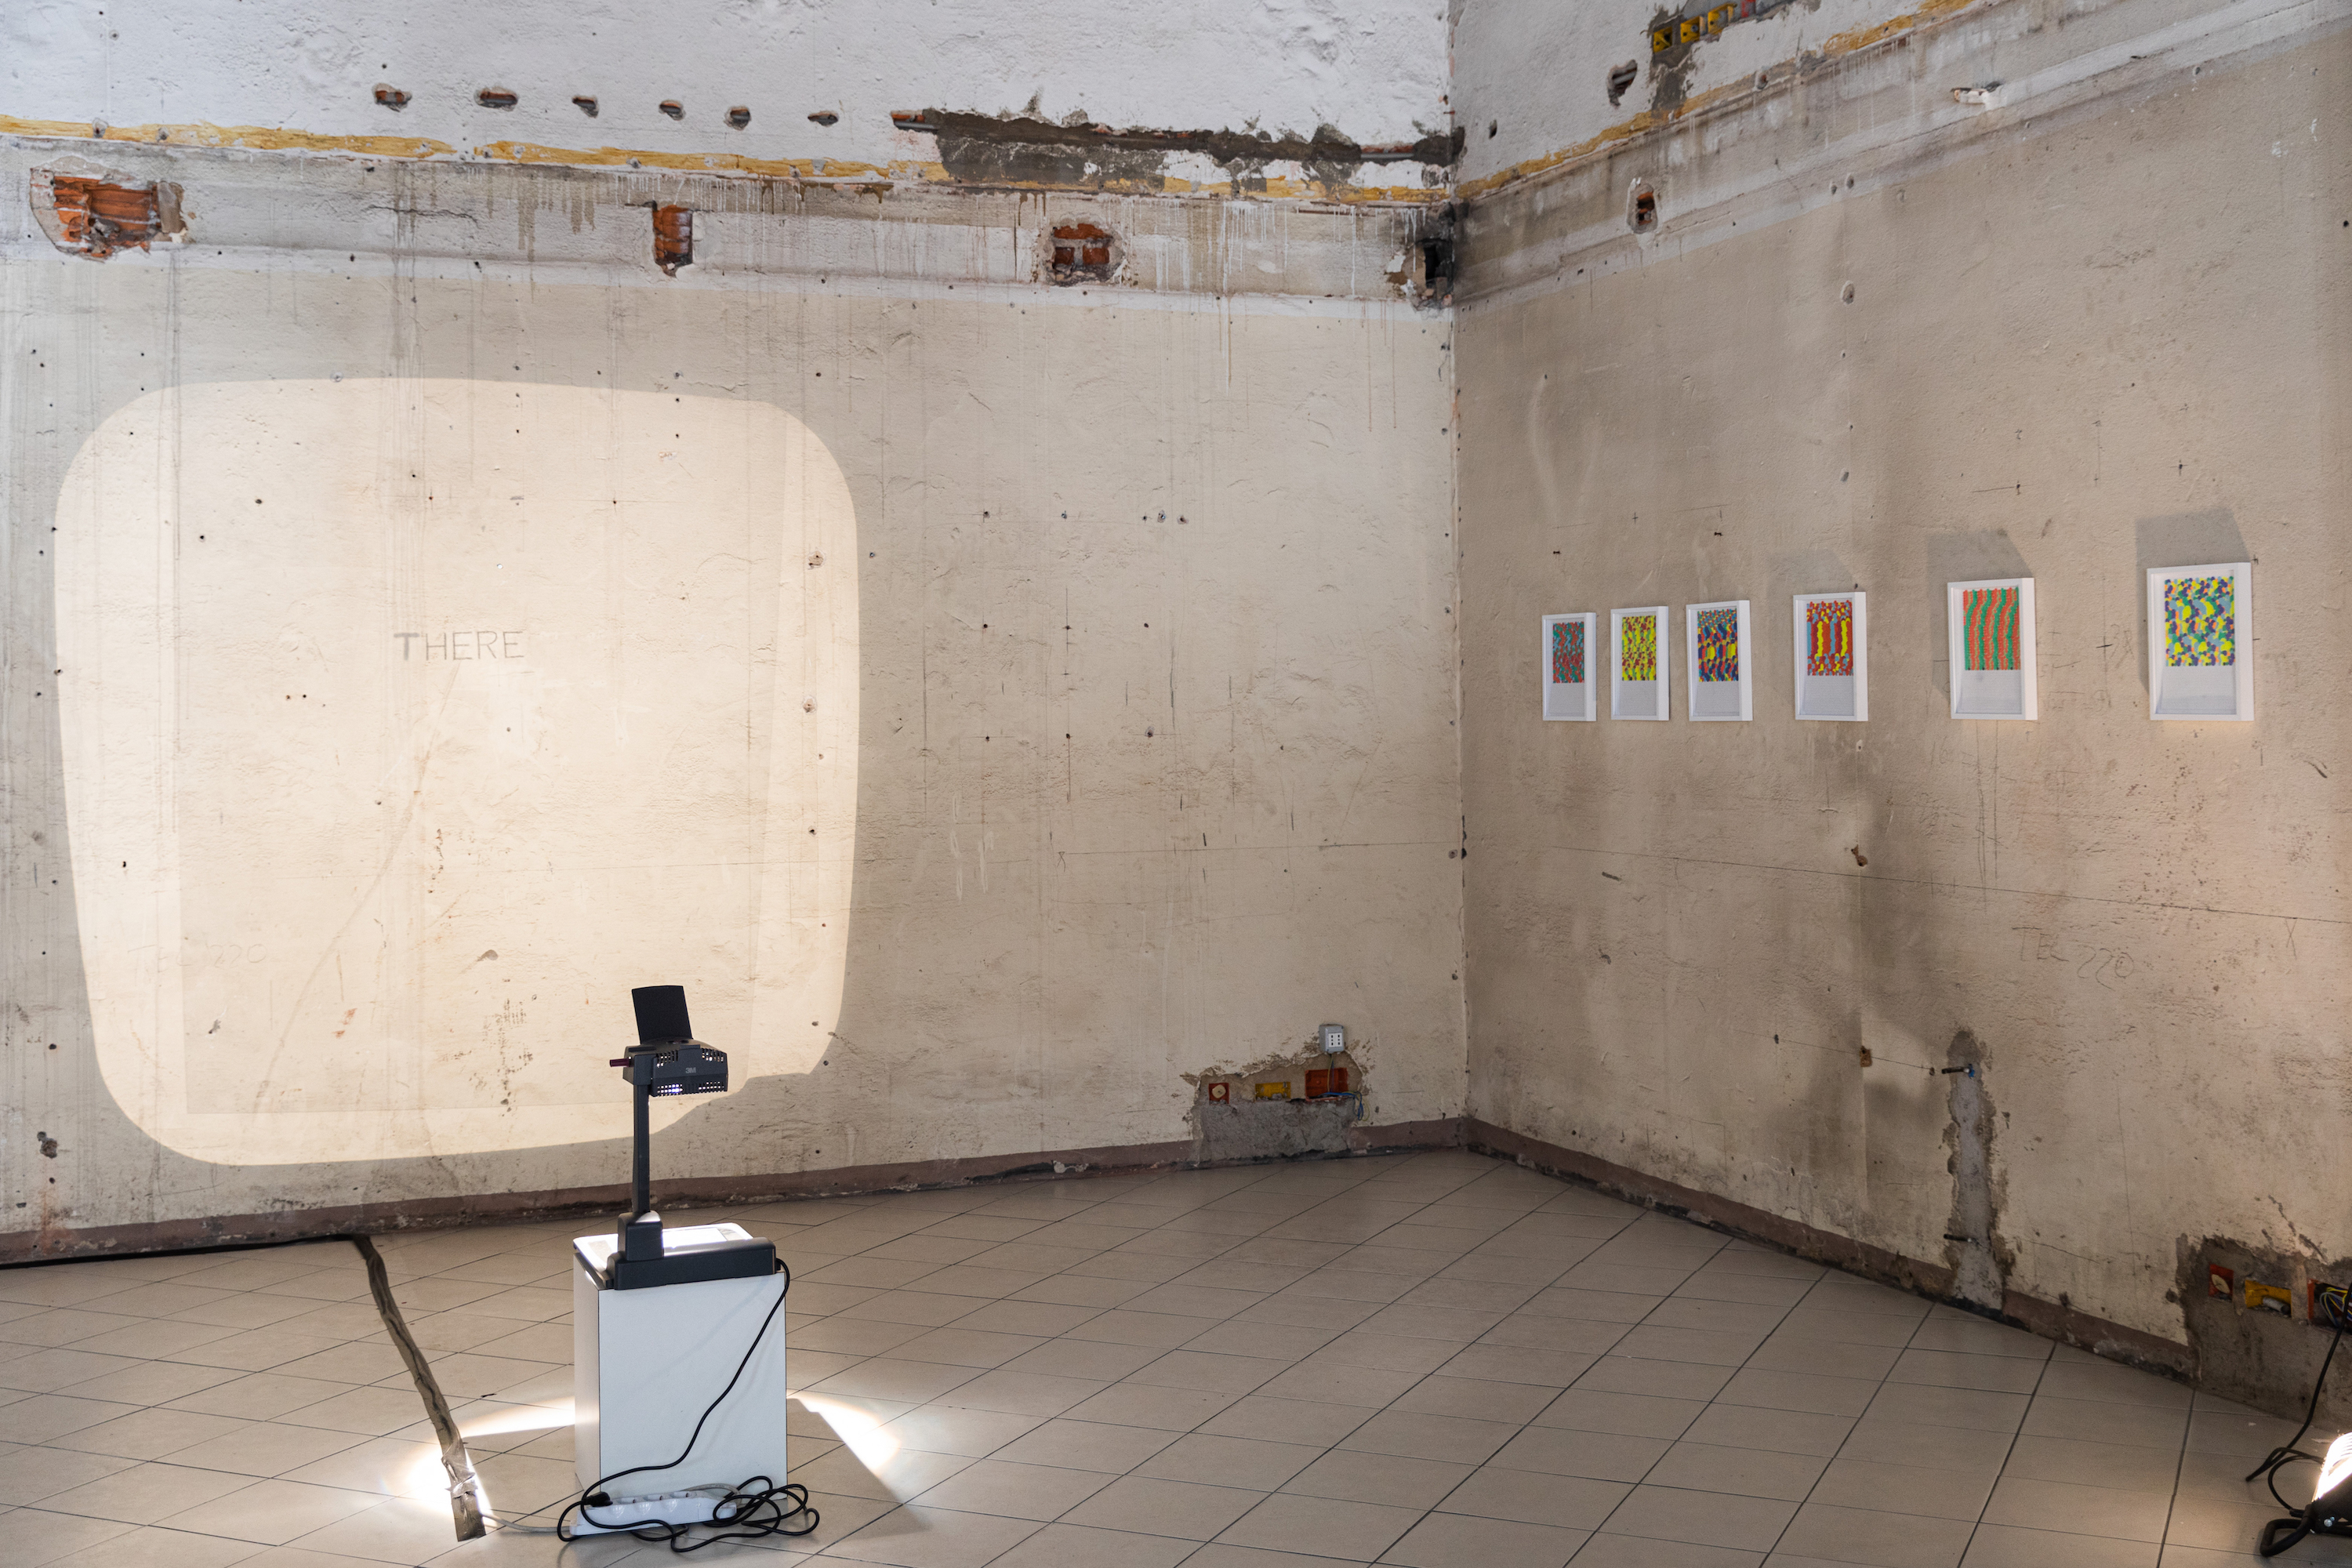 Exhibition view of 'Altri echi'. Photography by Lucrezia Costa